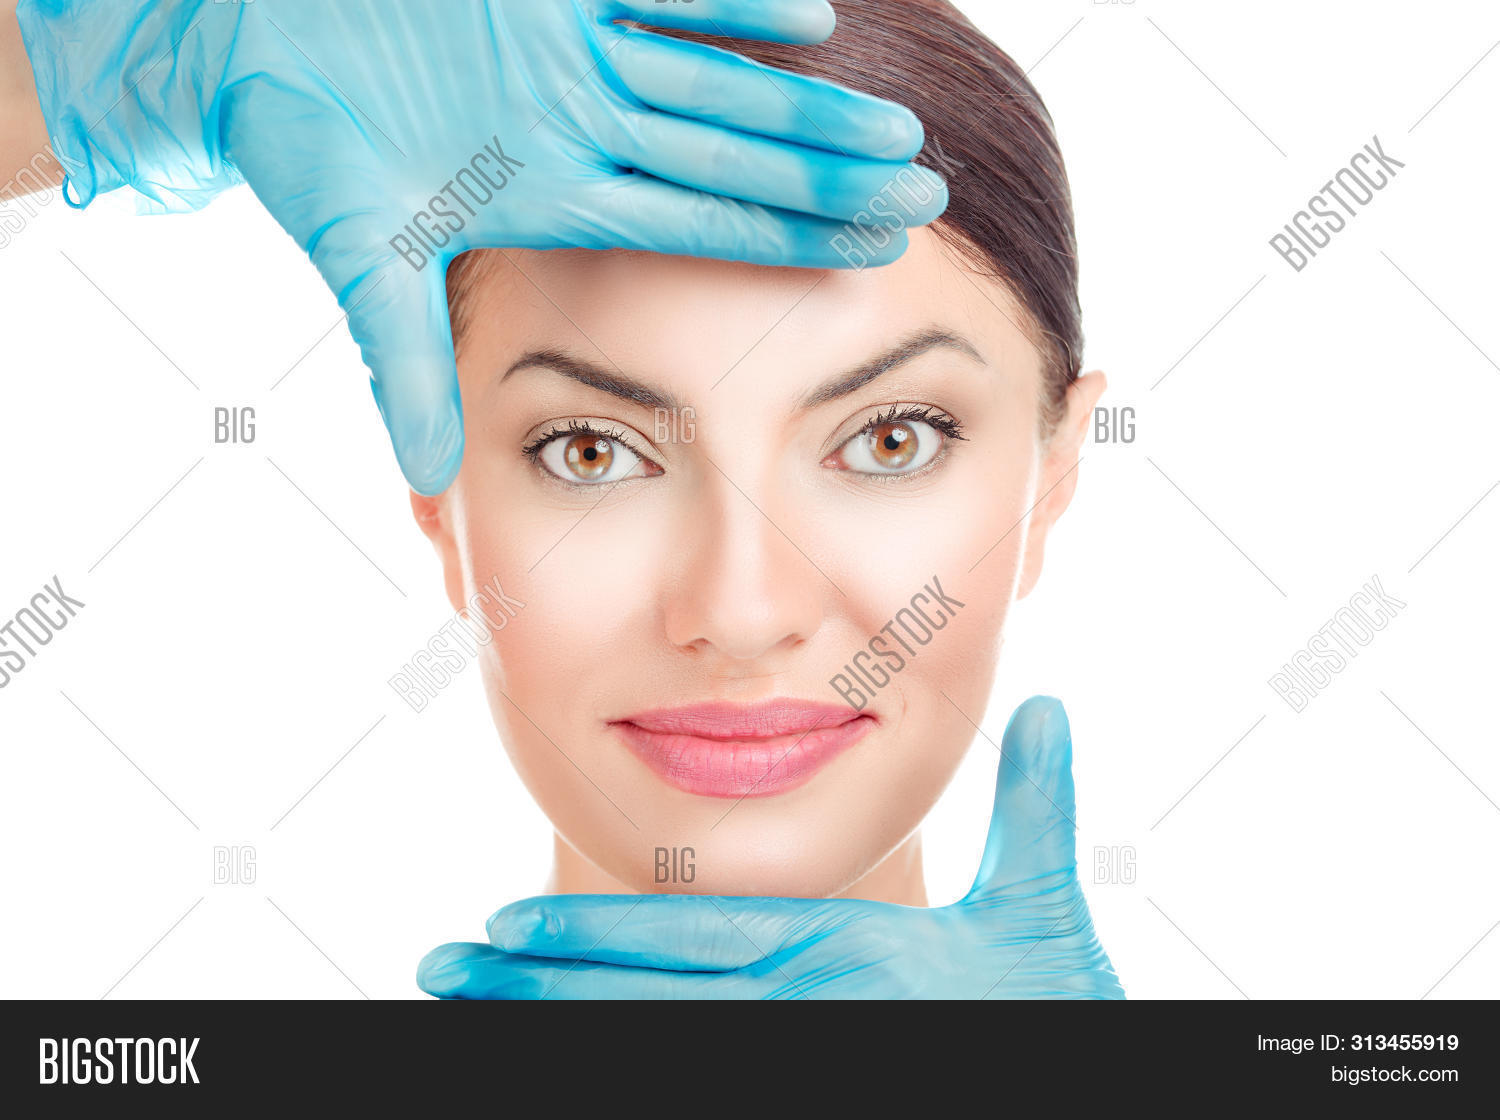 30s,aesthetic,age,aging,beautician,beautiful,beauty,brunette,care,check,clean,correction,corrective,cosmetic,cosmetology,dermatologist,examination,eyes,face,facial,female,frame,fresh,girl,gloves,hands,health,healthcare,healthy,hyaluronic,in,lifting,lips,medical,operation,patient,plastic,procedure,rejuvenation,shape,skin,skincare,spa,surgeon,surgery,treatment,wellness,white,woman,wrinkle